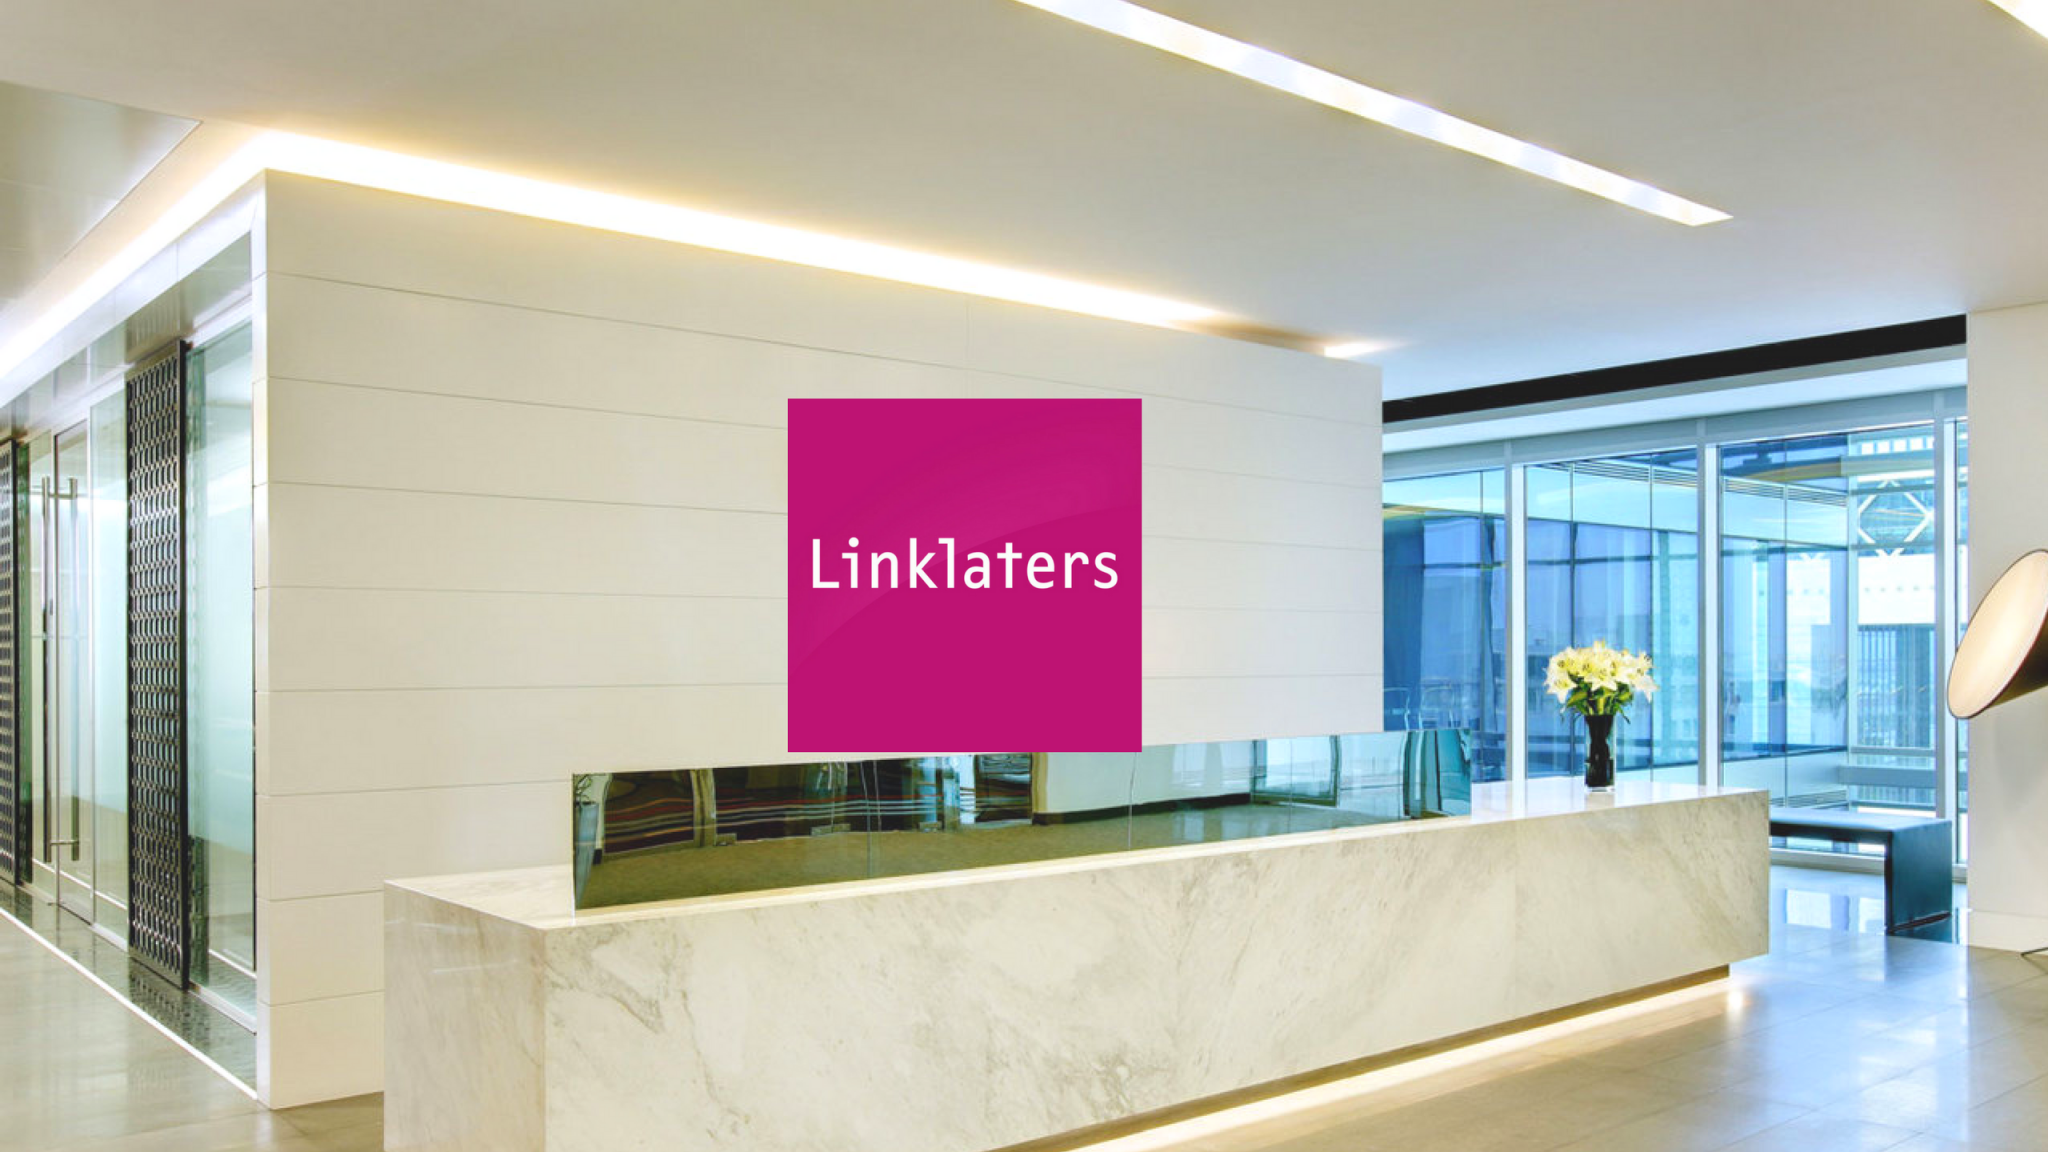 Linklaters Best Law Firms in the World UpSlide Top 50